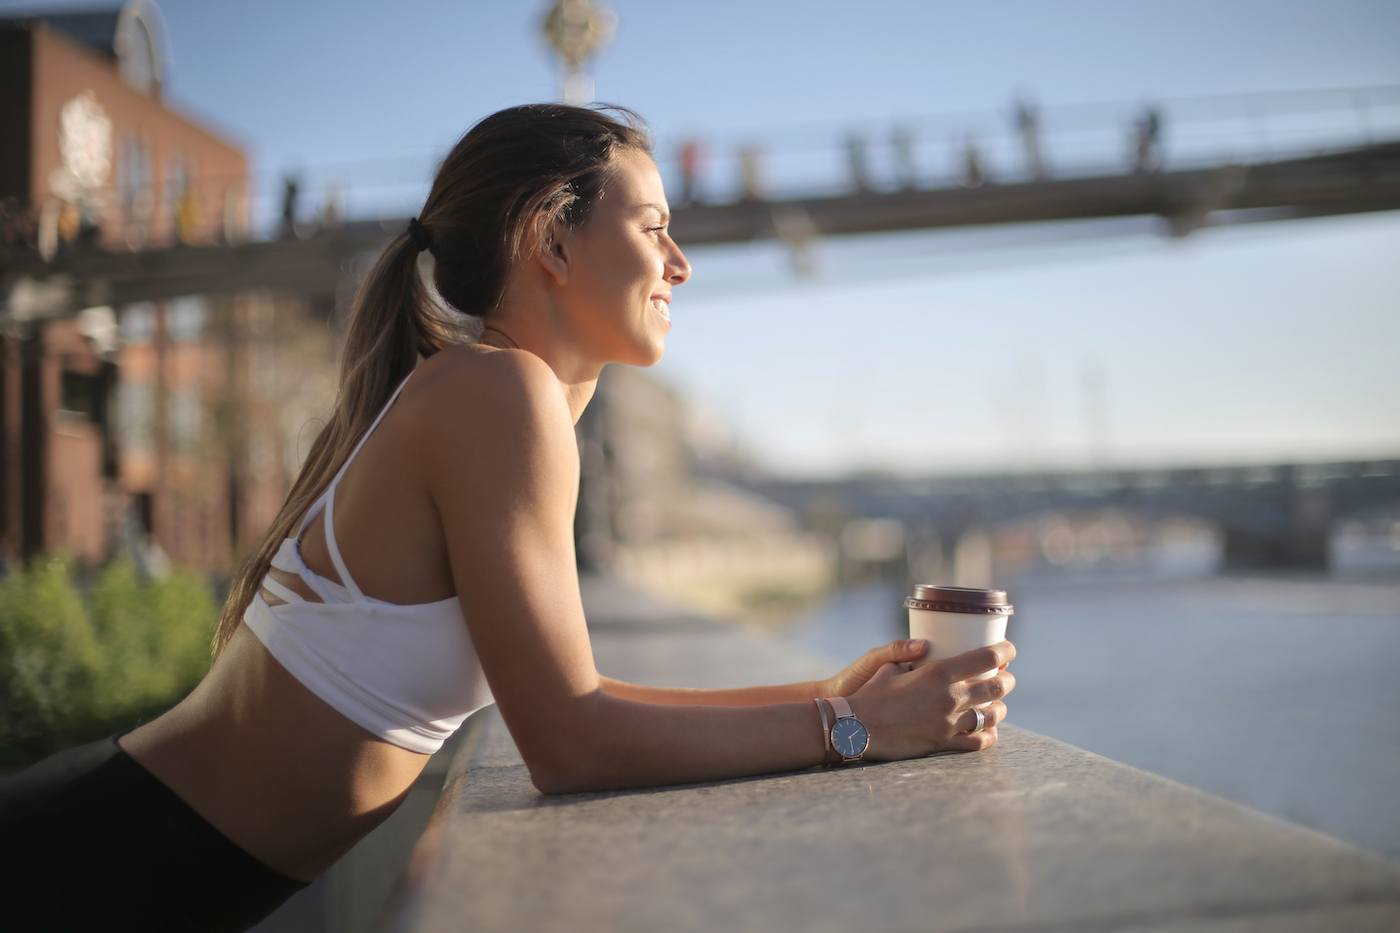 Everyone at my gym is sipping coffee mid-workout, and nutritionists told me why